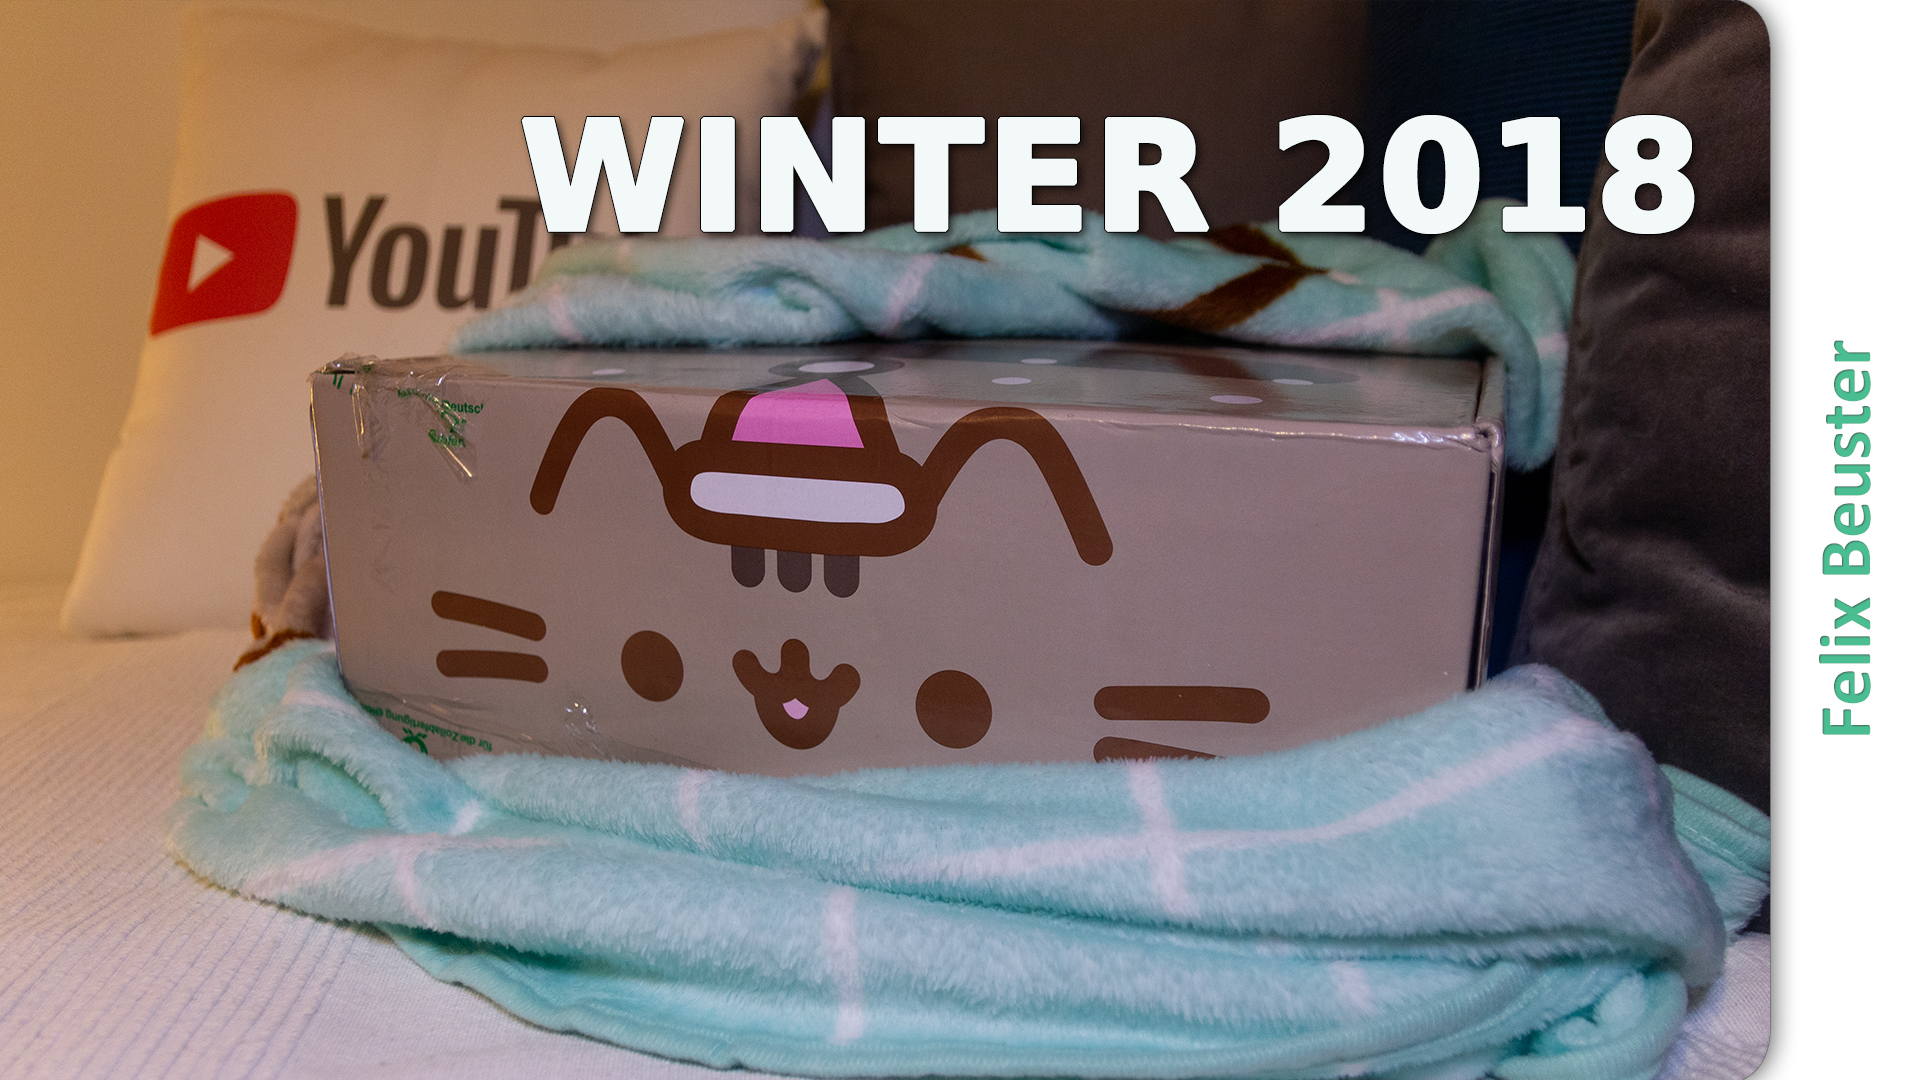 Es wird kalt - Pusheen Box Winter 2018 - Unboxing und Review